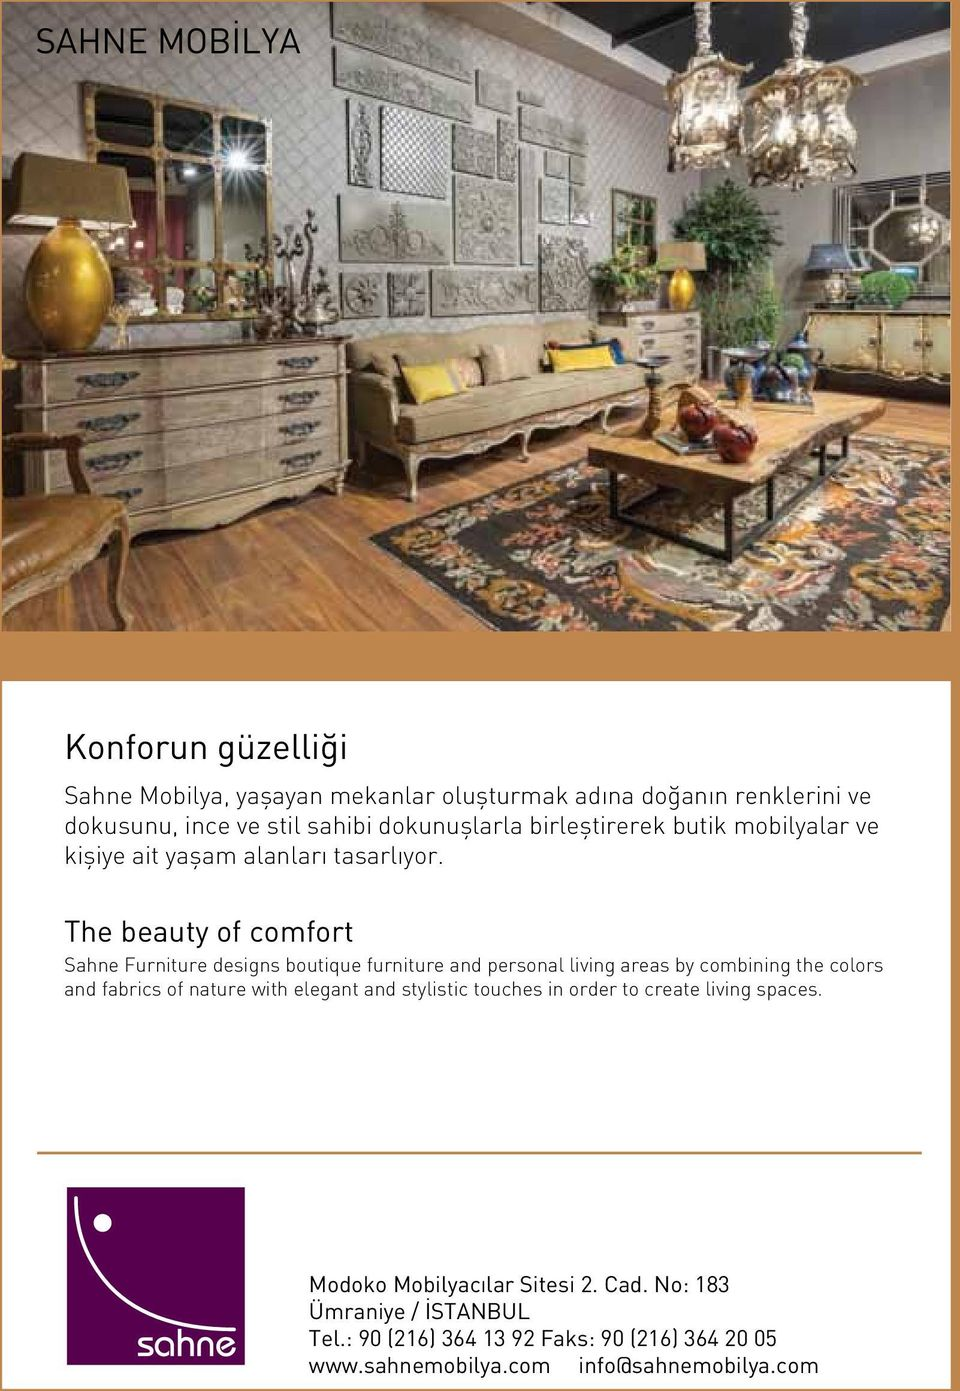 The beauty of comfort Sahne Furniture designs boutique furniture and personal living areas by combining the colors and fabrics of nature with